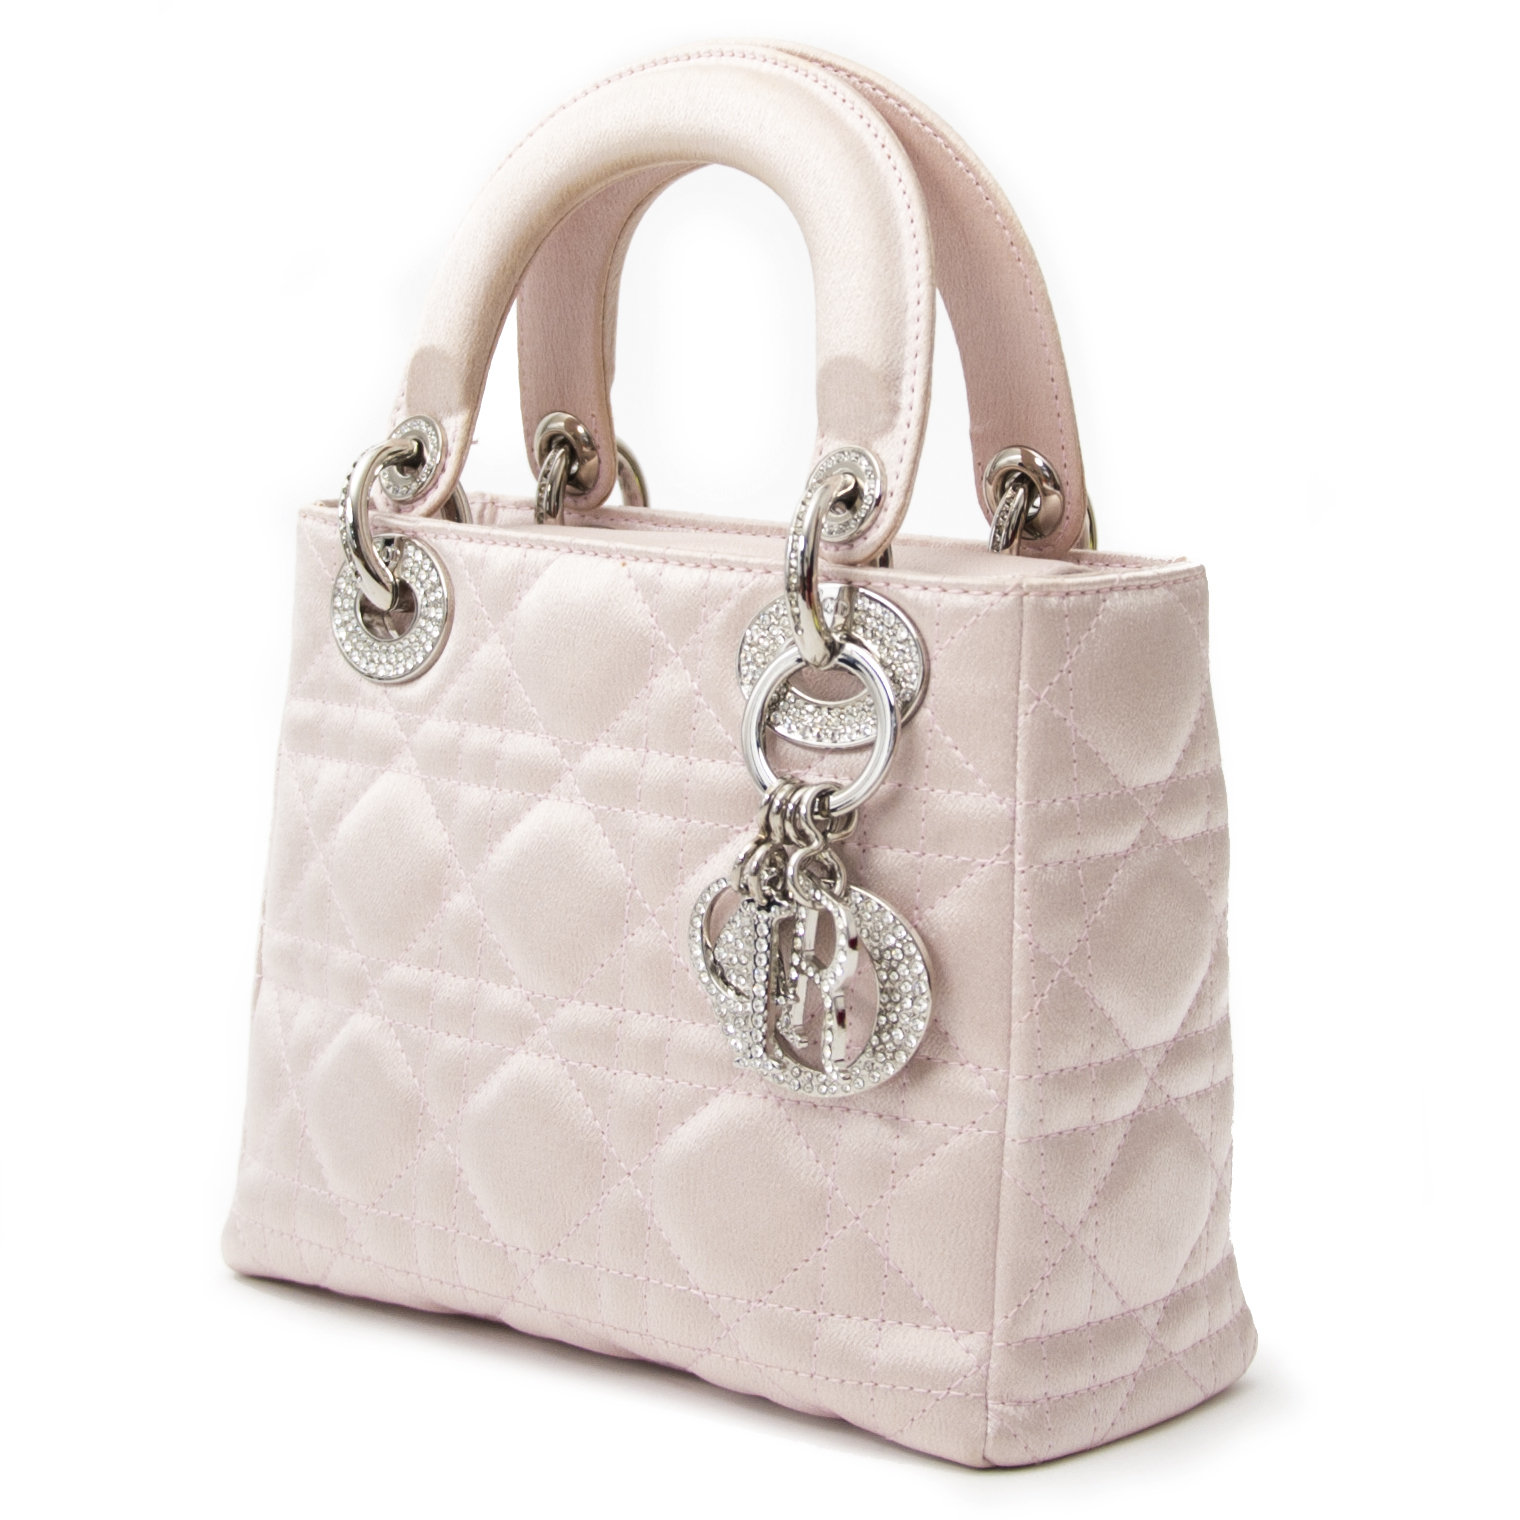 8db8dd2f162e ... sale online Do you want to buy an authentic Christian Dior Satin  Swarovski Crystal Cannage Mini Lady Dior